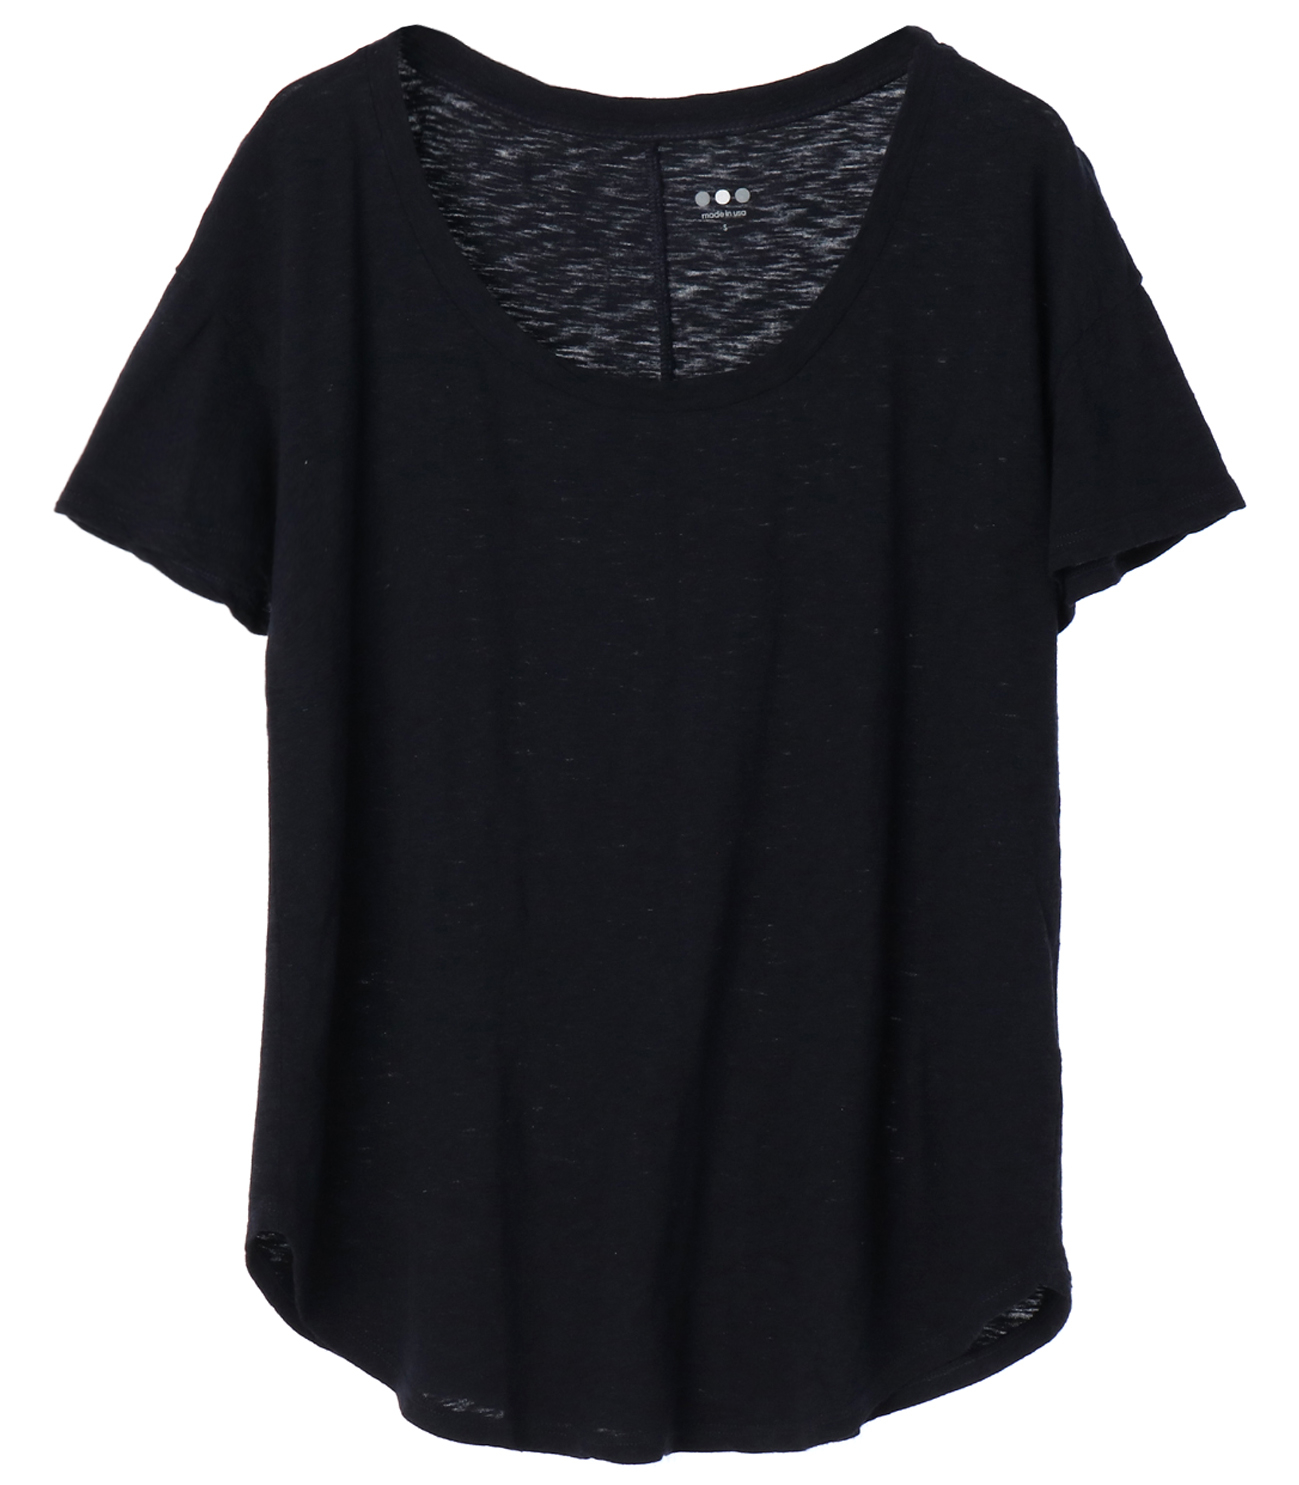 eco knit basic scoop neck tee 詳細画像 night iris 1